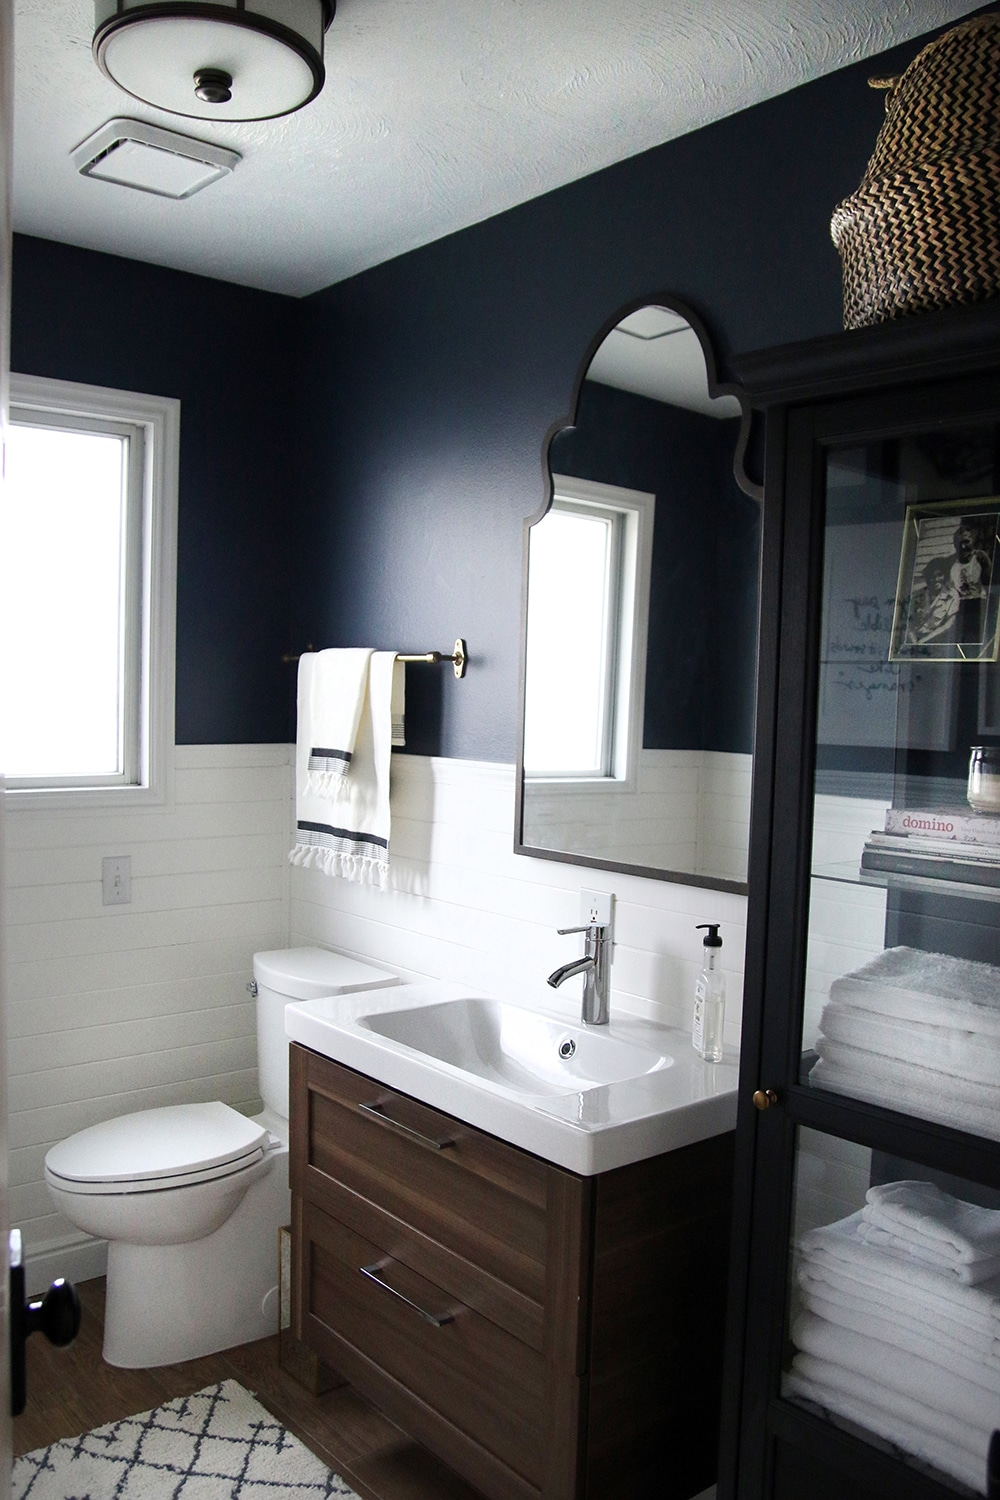 A Half-bath refresh - Chris s Julia on half bathroom blue, half bathroom decorating ideas, half bathroom flooring, half bathroom rug ideas, half bathroom color ideas, half bathroom vanity ideas, half bathroom mirrors, half baths ideas, half bathroom makeover ideas, half bathroom decor ideas, half bathroom storage ideas, half bathroom modern, half bathroom window treatments, half bathroom design, half wall decor ideas, half bathroom paint ideas, half bathroom tile ideas, half bathroom closet ideas, half bathroom layouts, half bathroom wallpaper ideas,